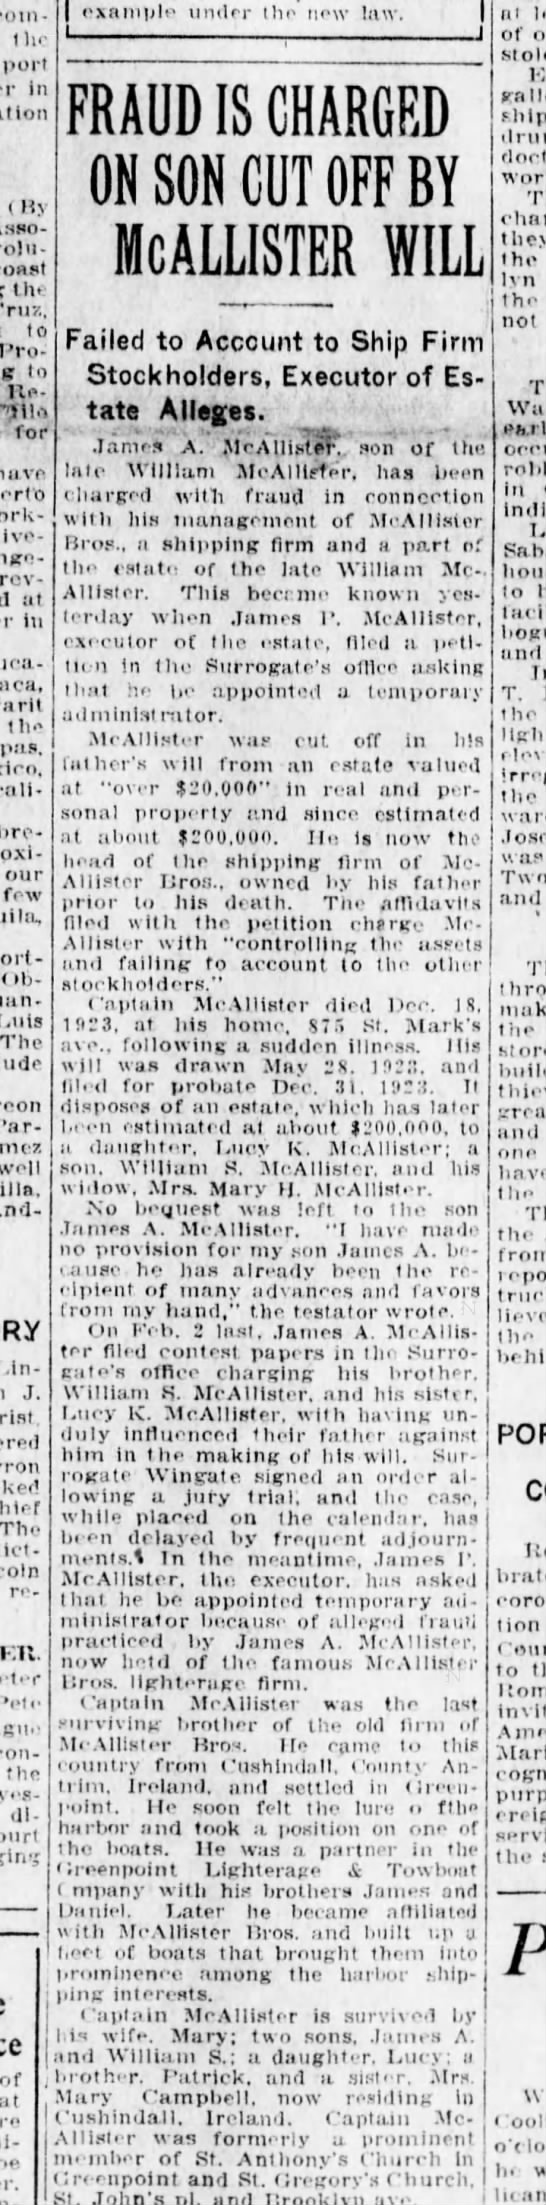 Son of William McAllister claims fraud 12 Feb 1924  PRINTED -